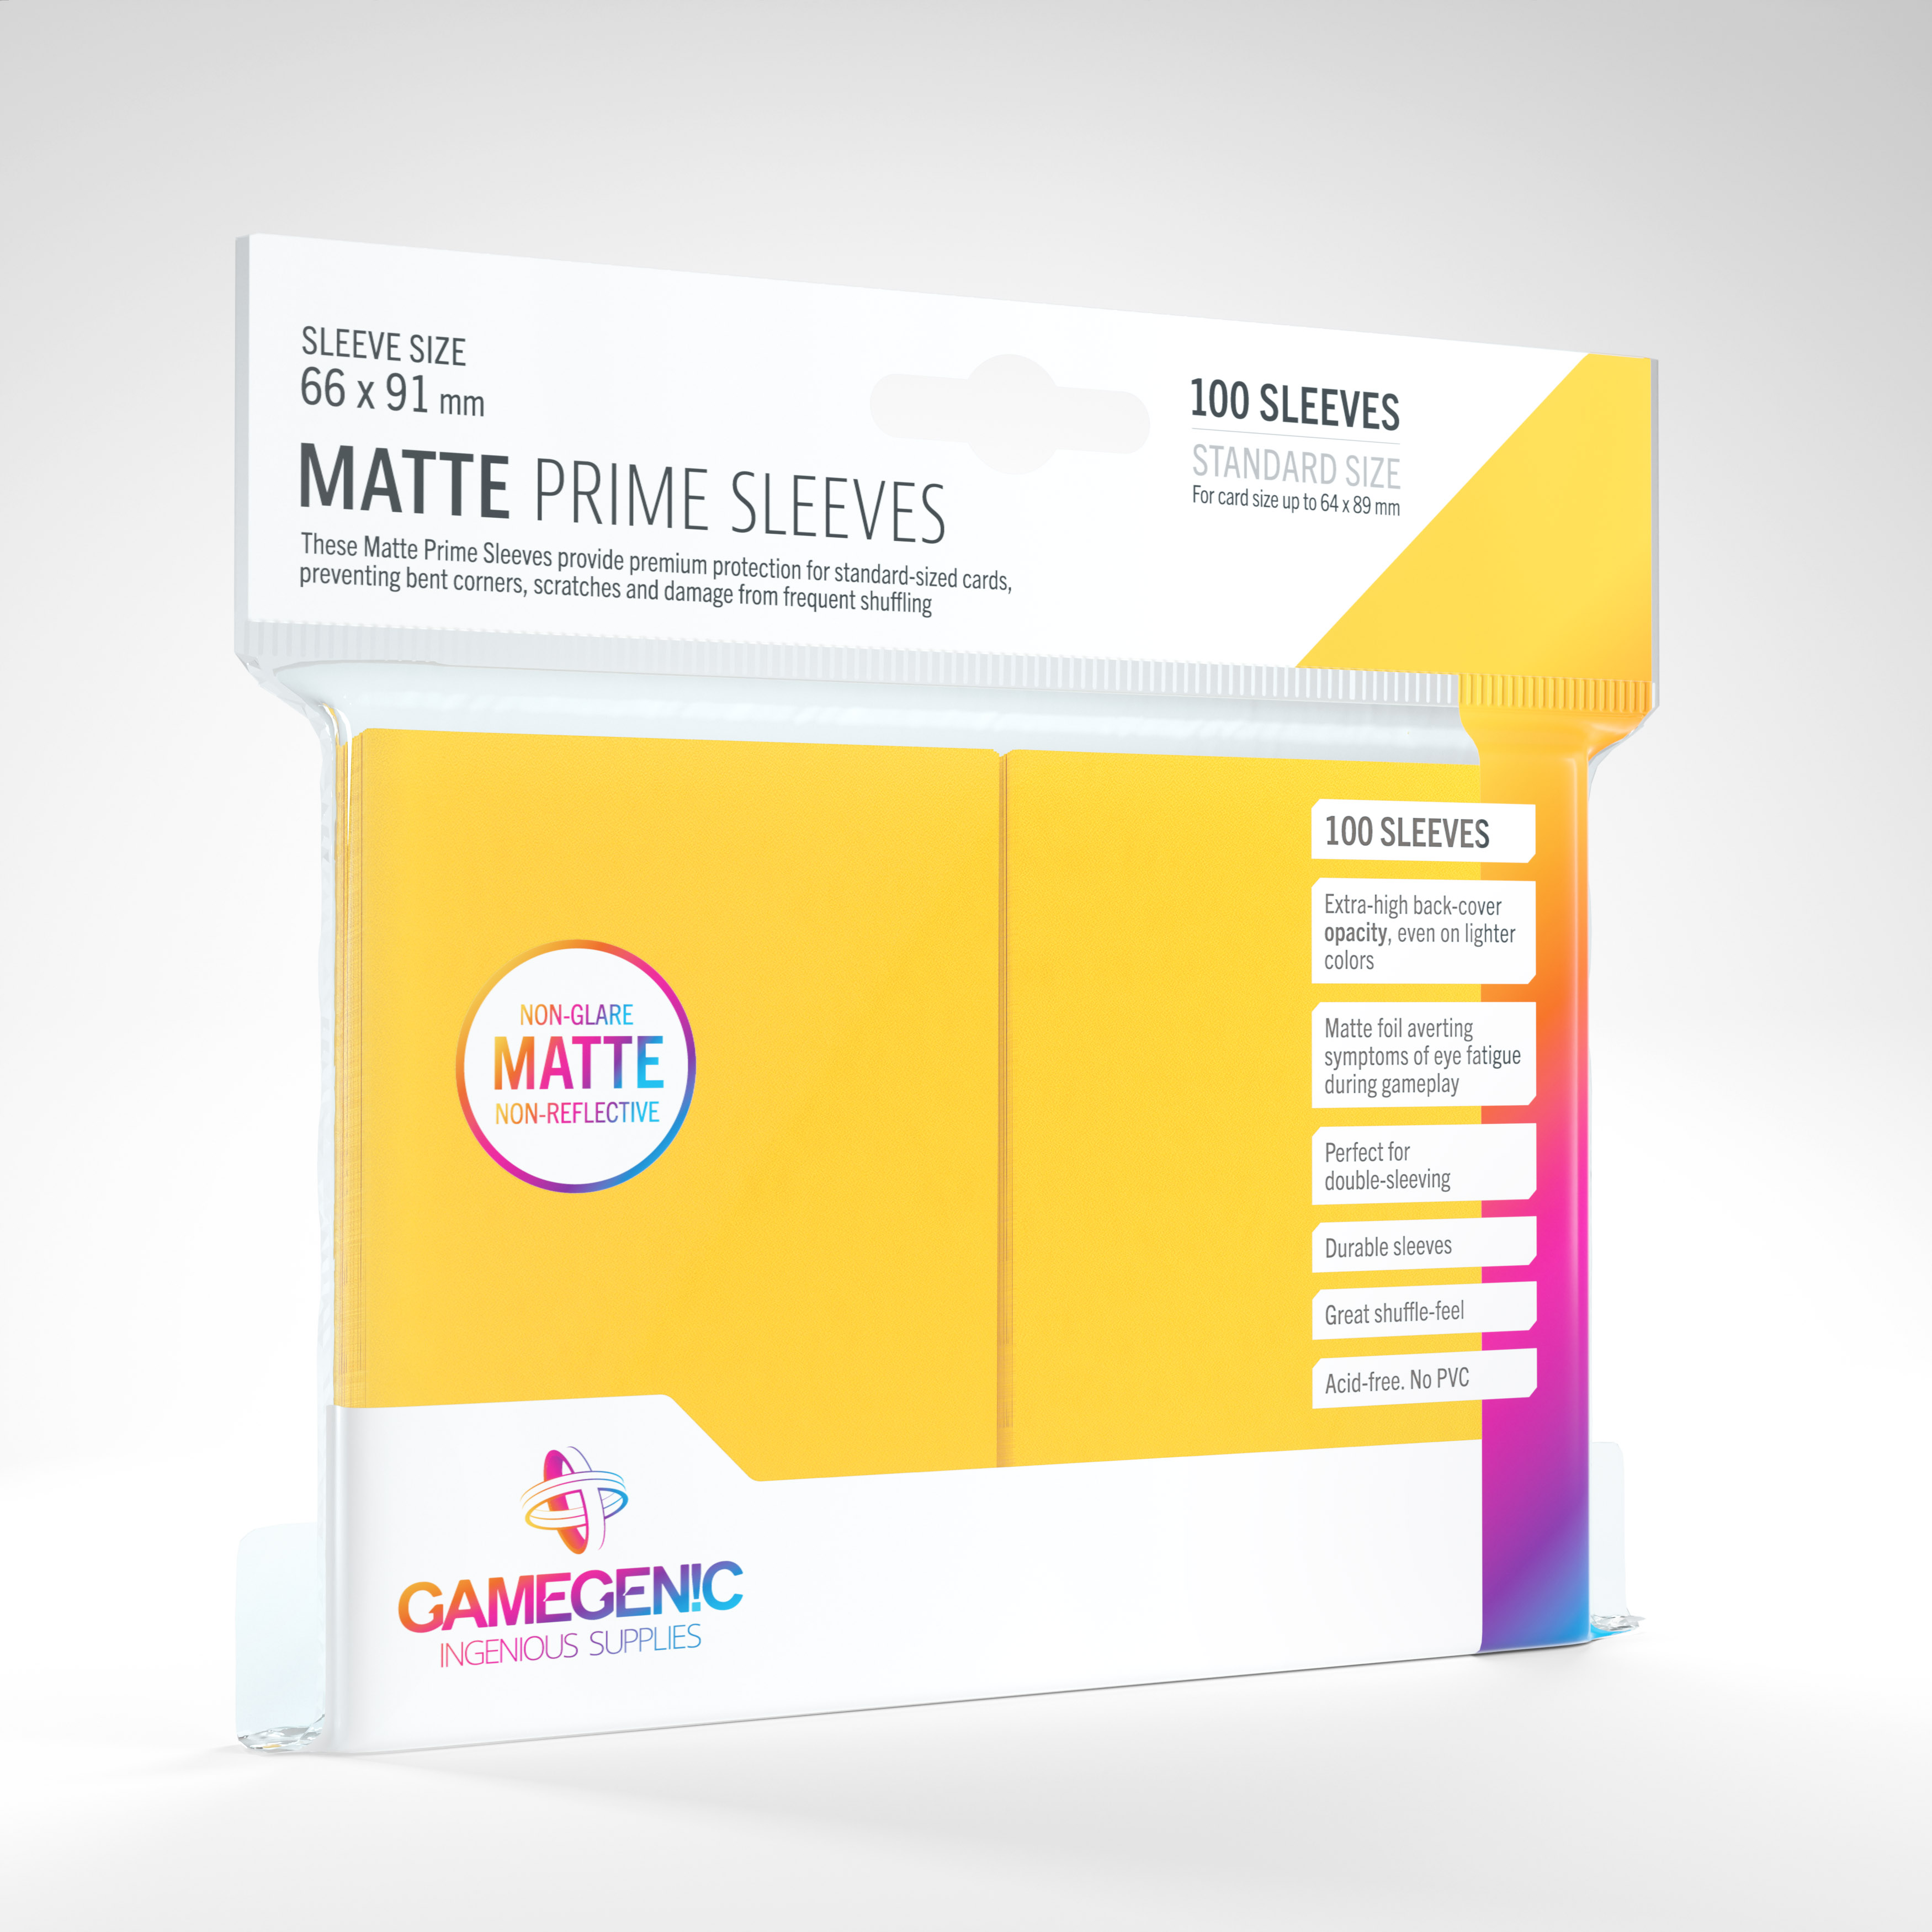 Gamegenic - Sleeves: Gamegenic Matte Prime Sleeves - Yellow (100)